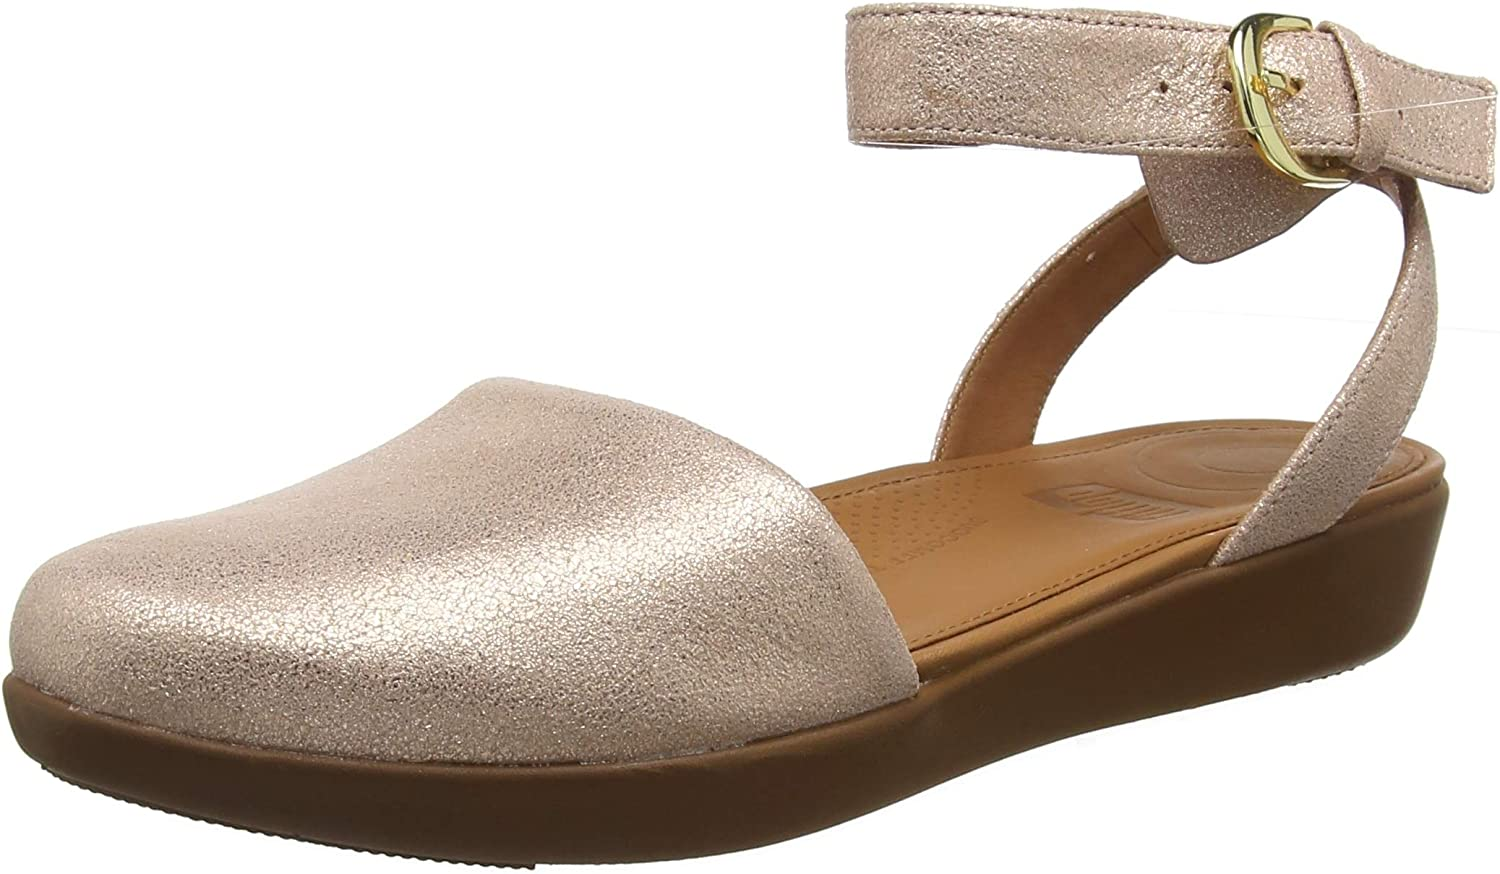 FitFlop Women's Ankle Strap Sandals